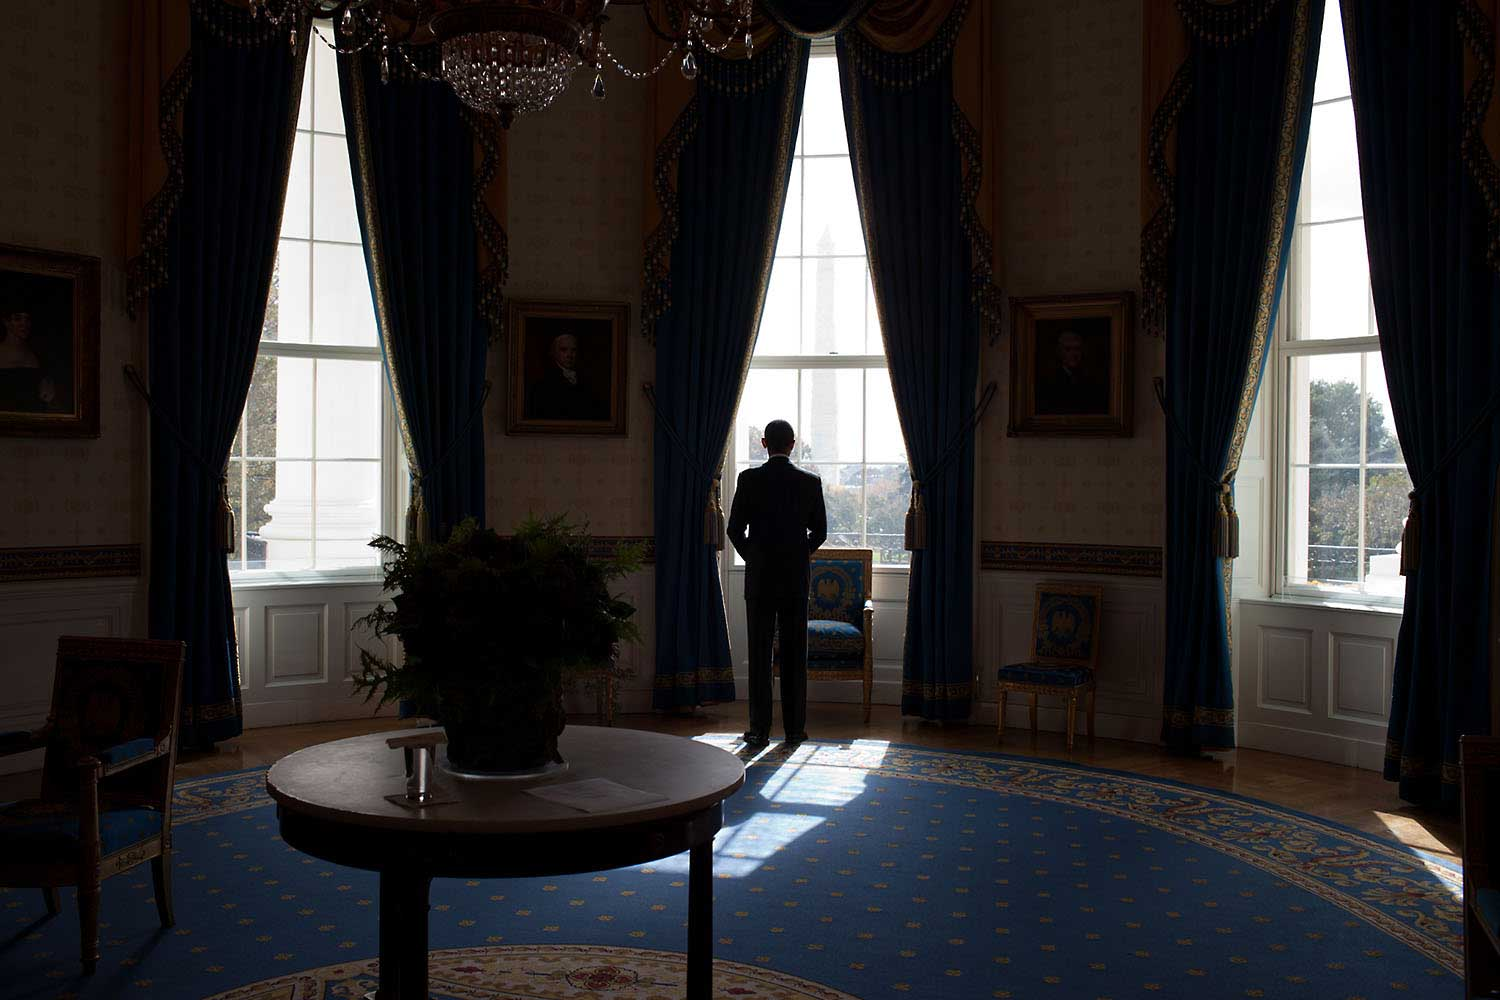 The day after the mid-term election, the President waits in the Blue Room of the White House before facing the press at a news conference in the East Room, Nov. 3, 2010.